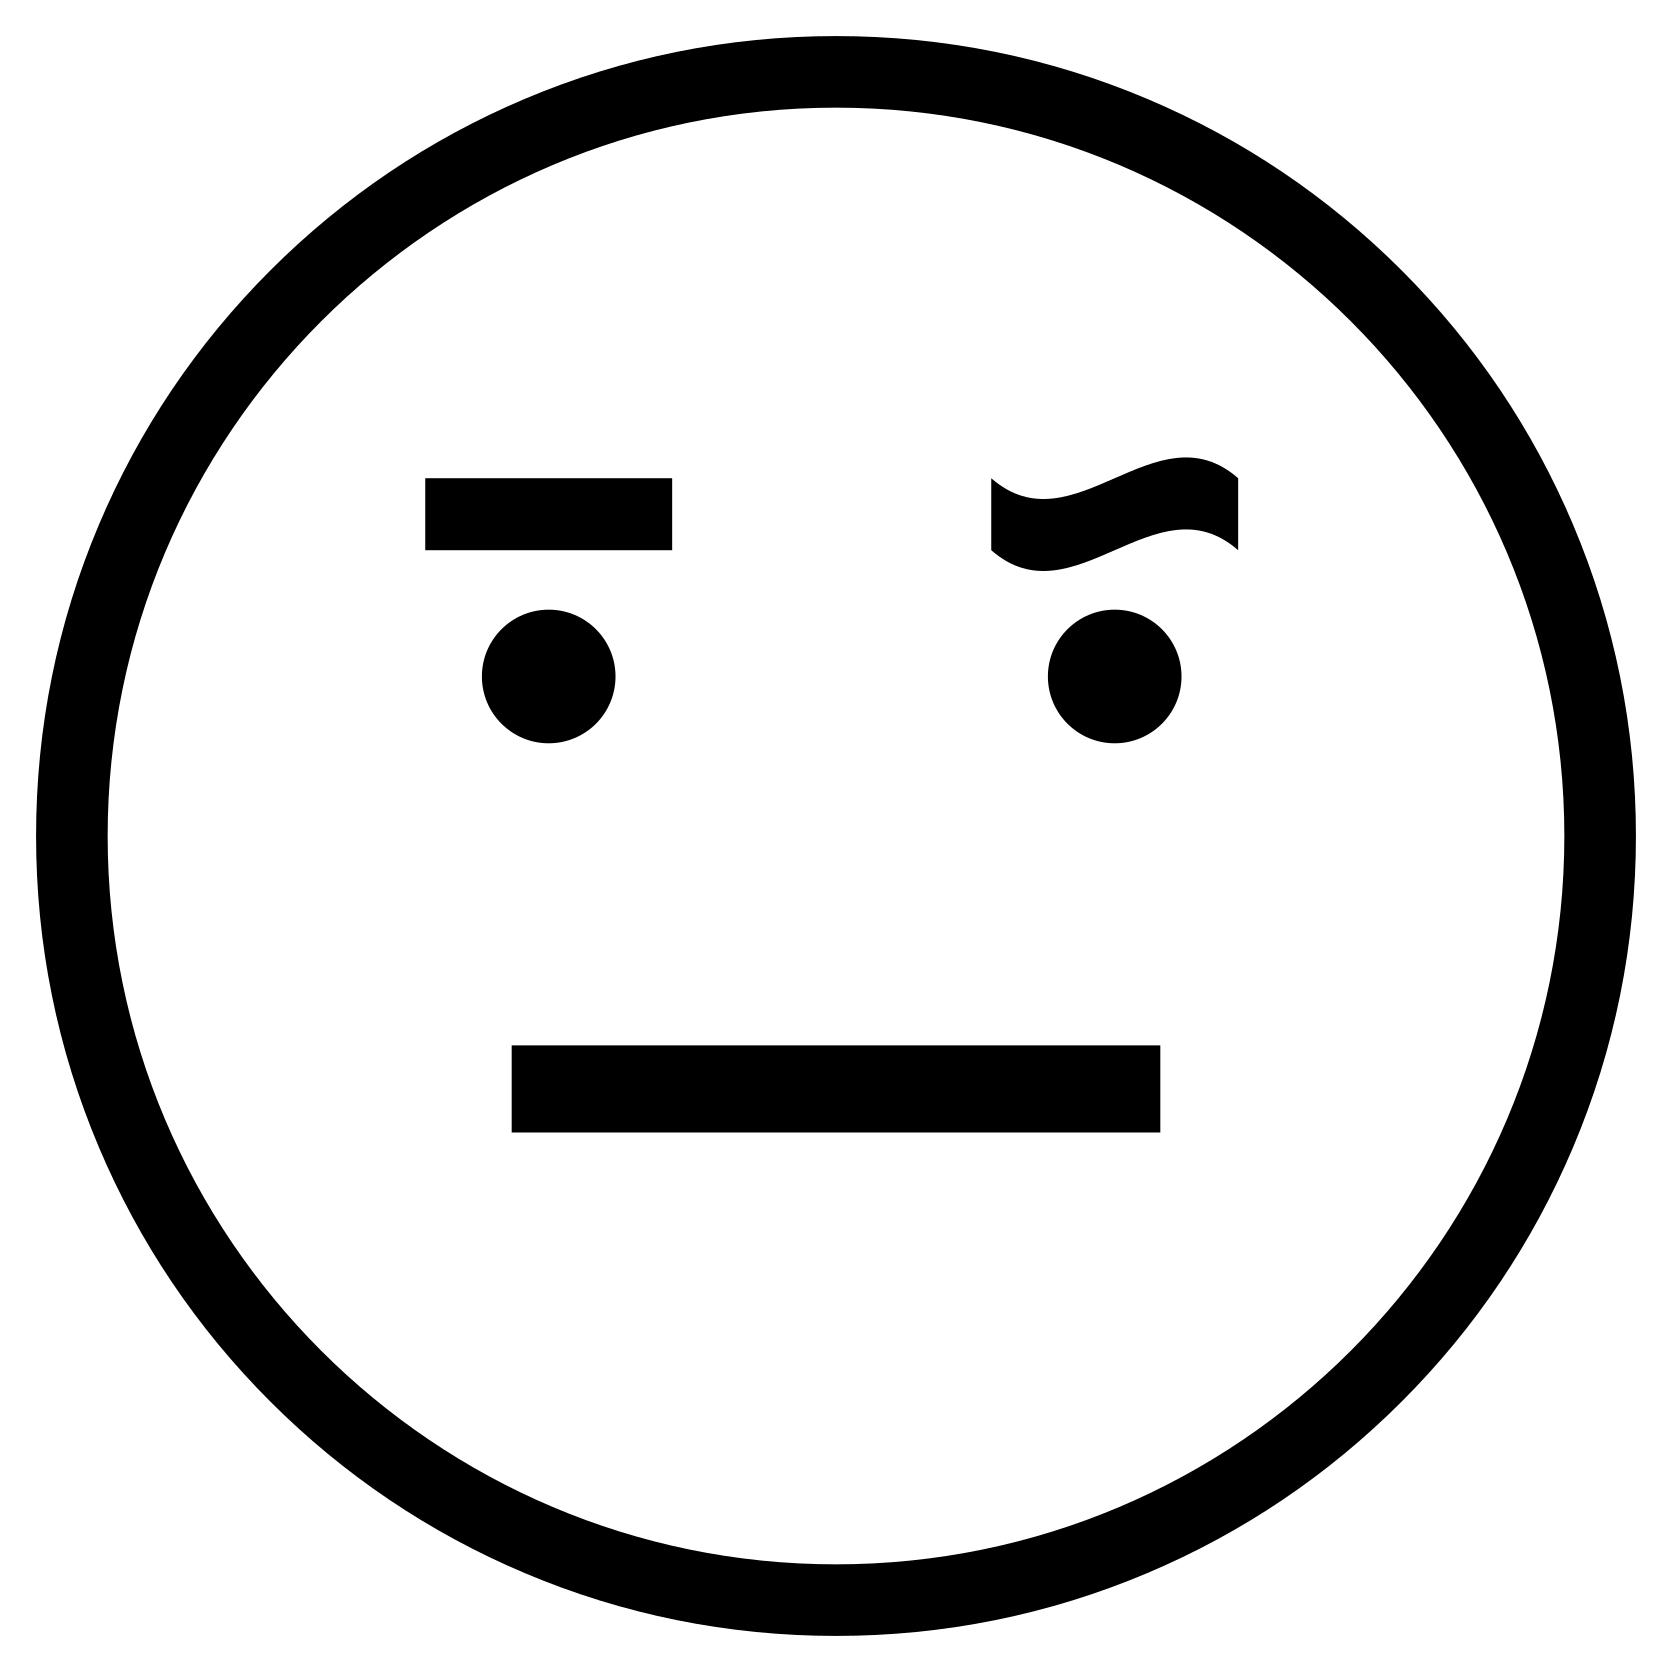 annoyed face Annoyed smiley face clipart design droide jpg.